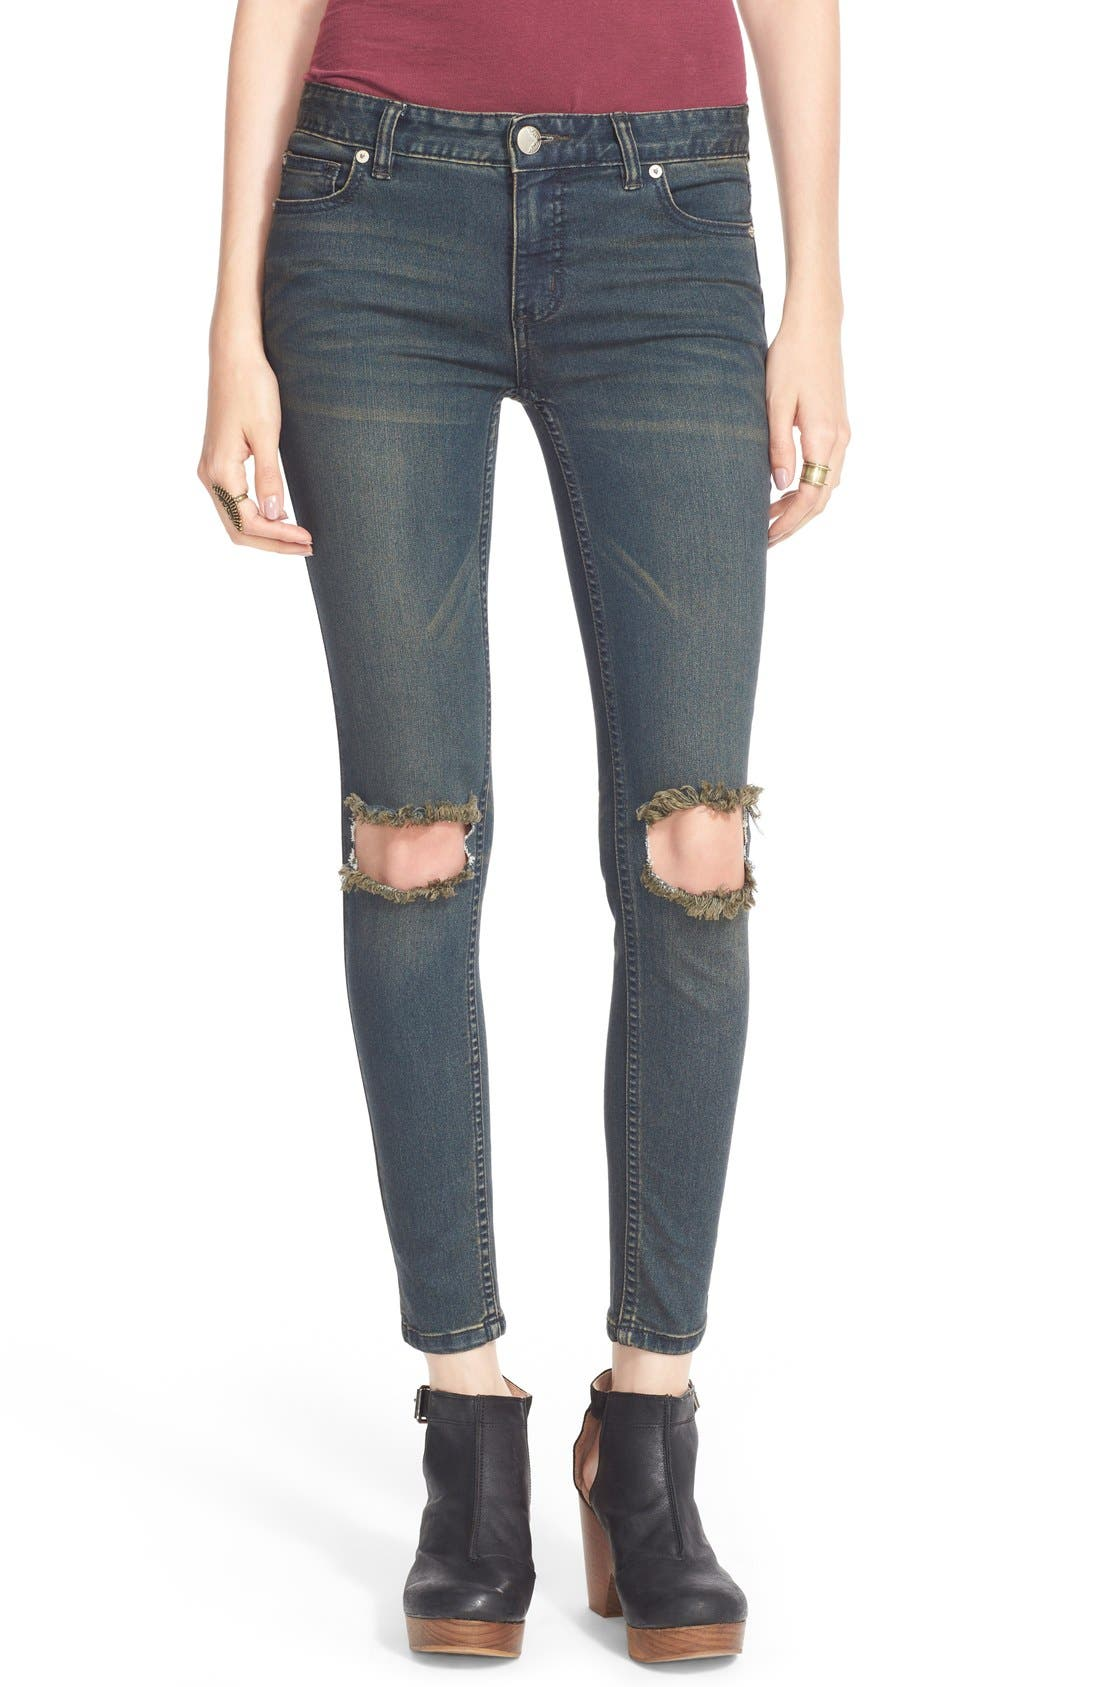 Alternate Image 1 Selected - Free People Destroyed Skinny Jeans